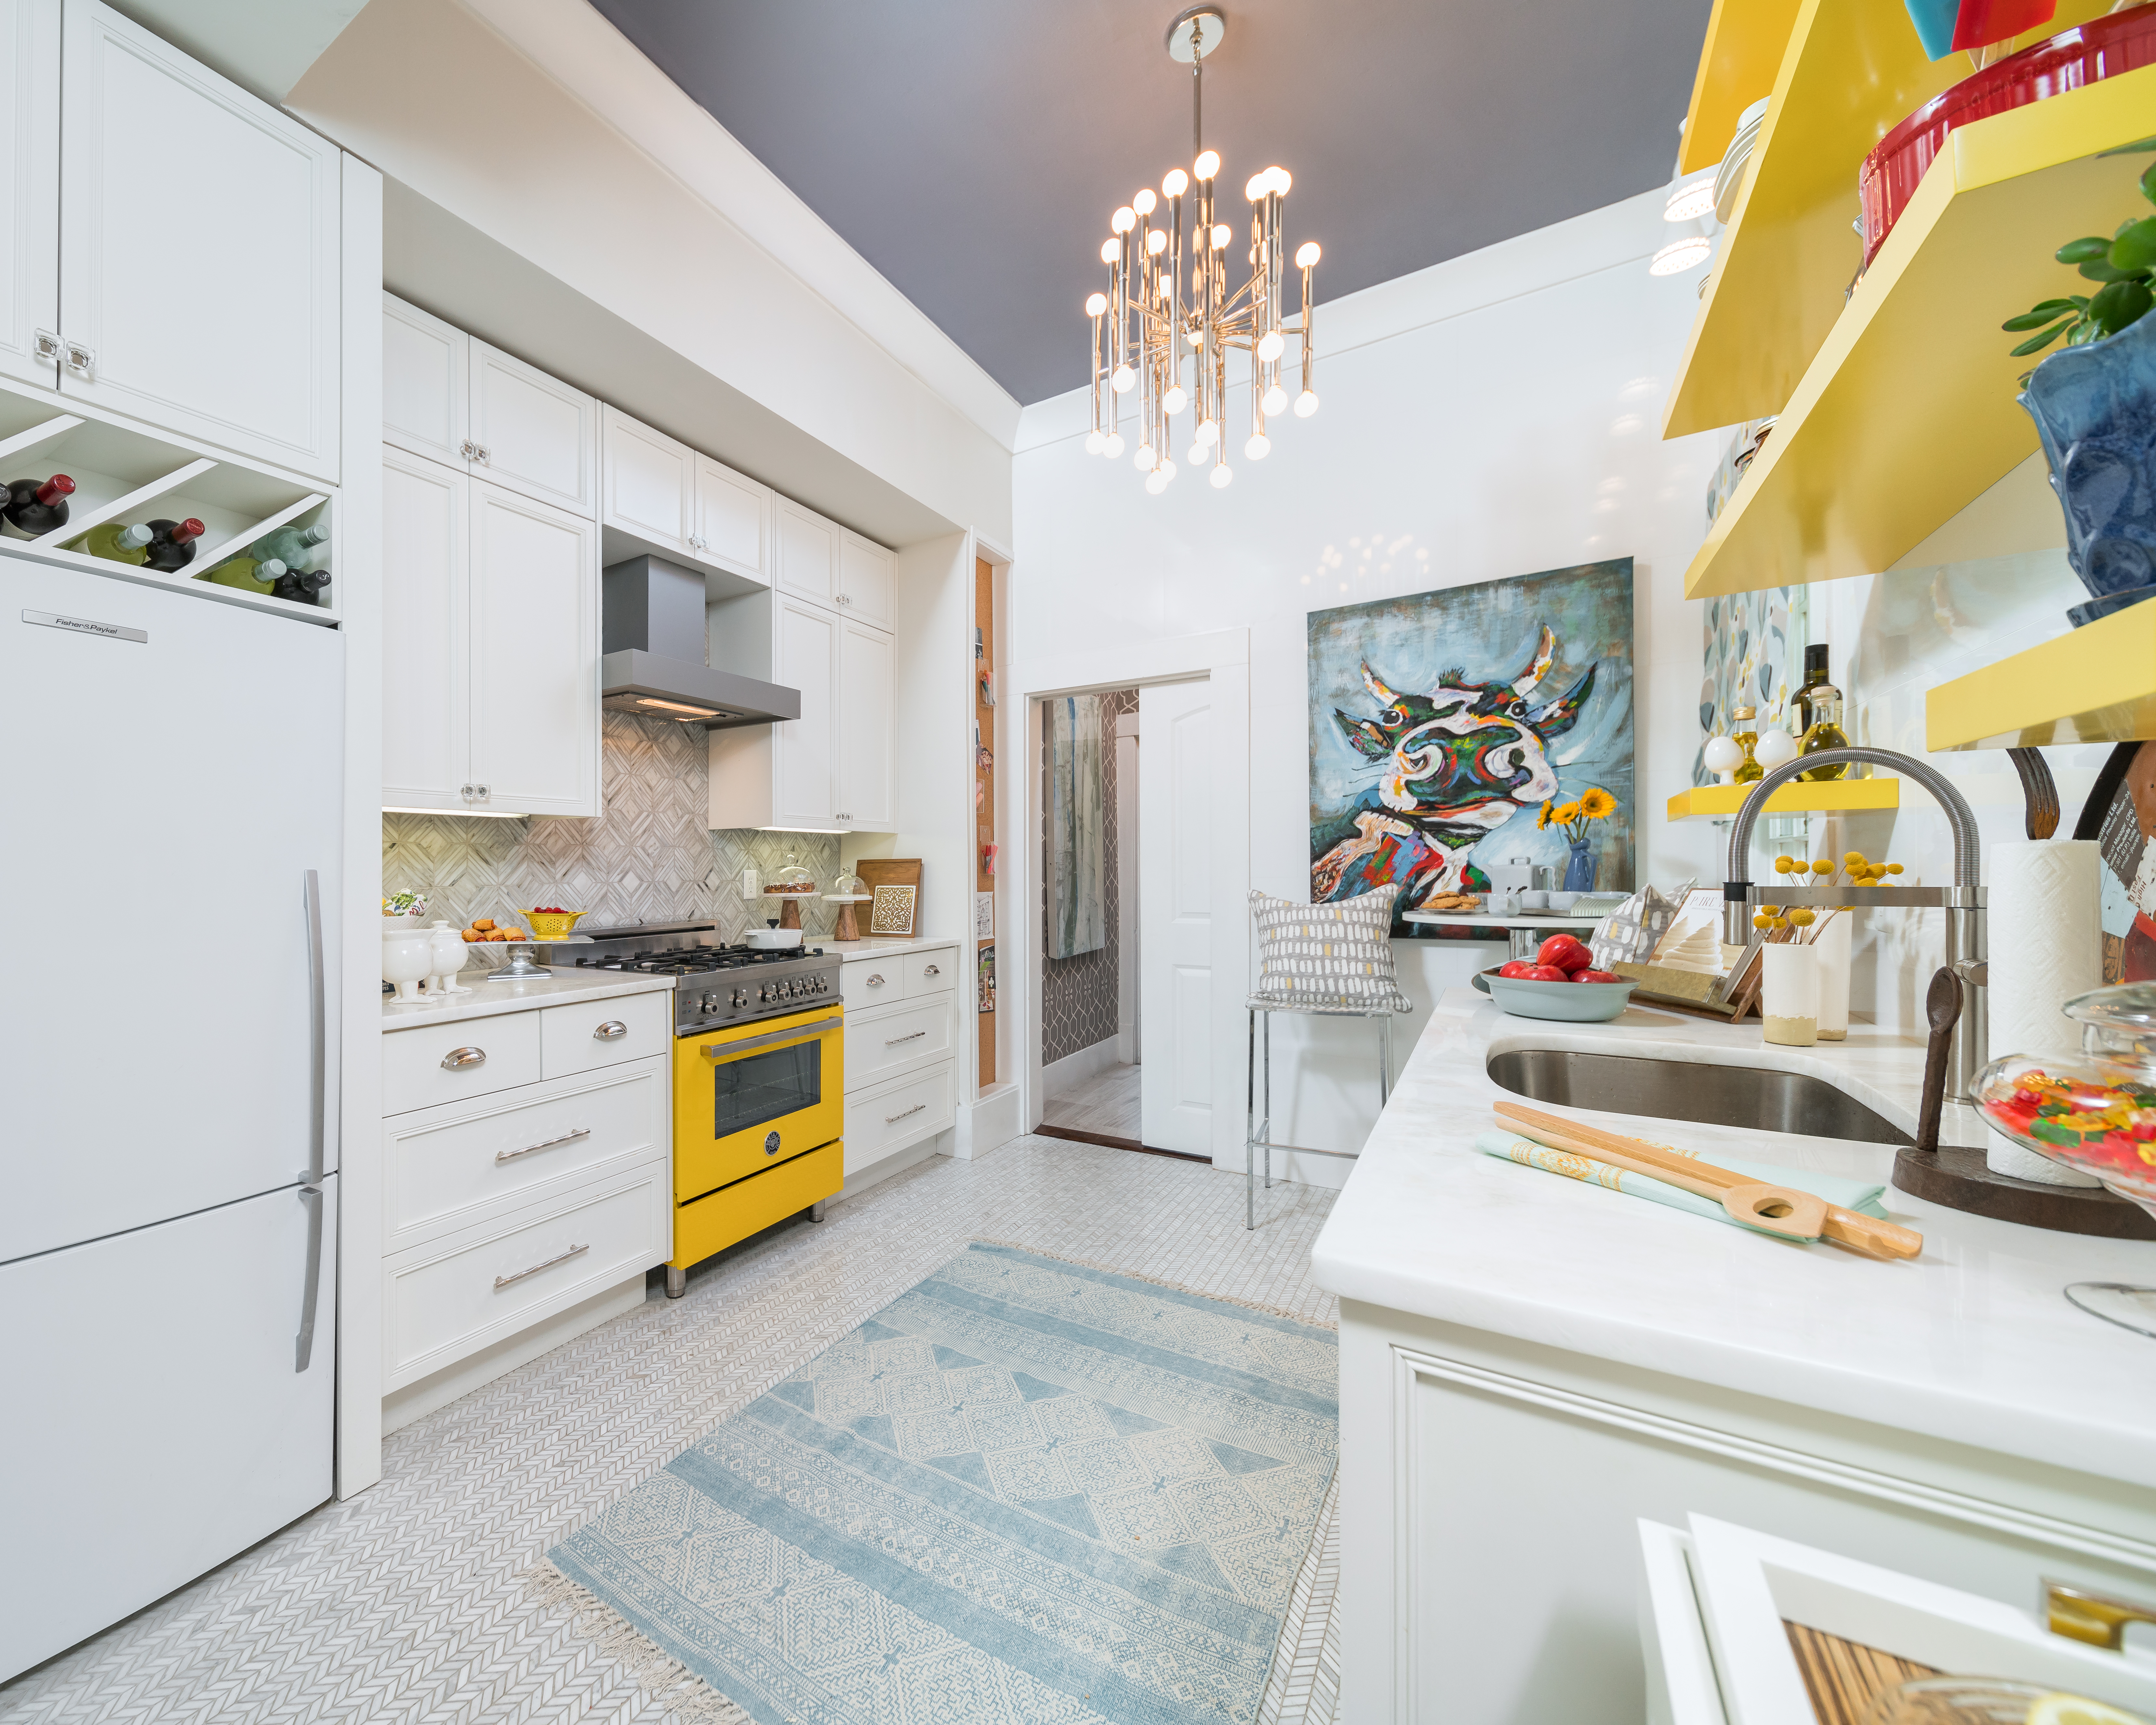 interior design trends colorful '70s kitchen styles are